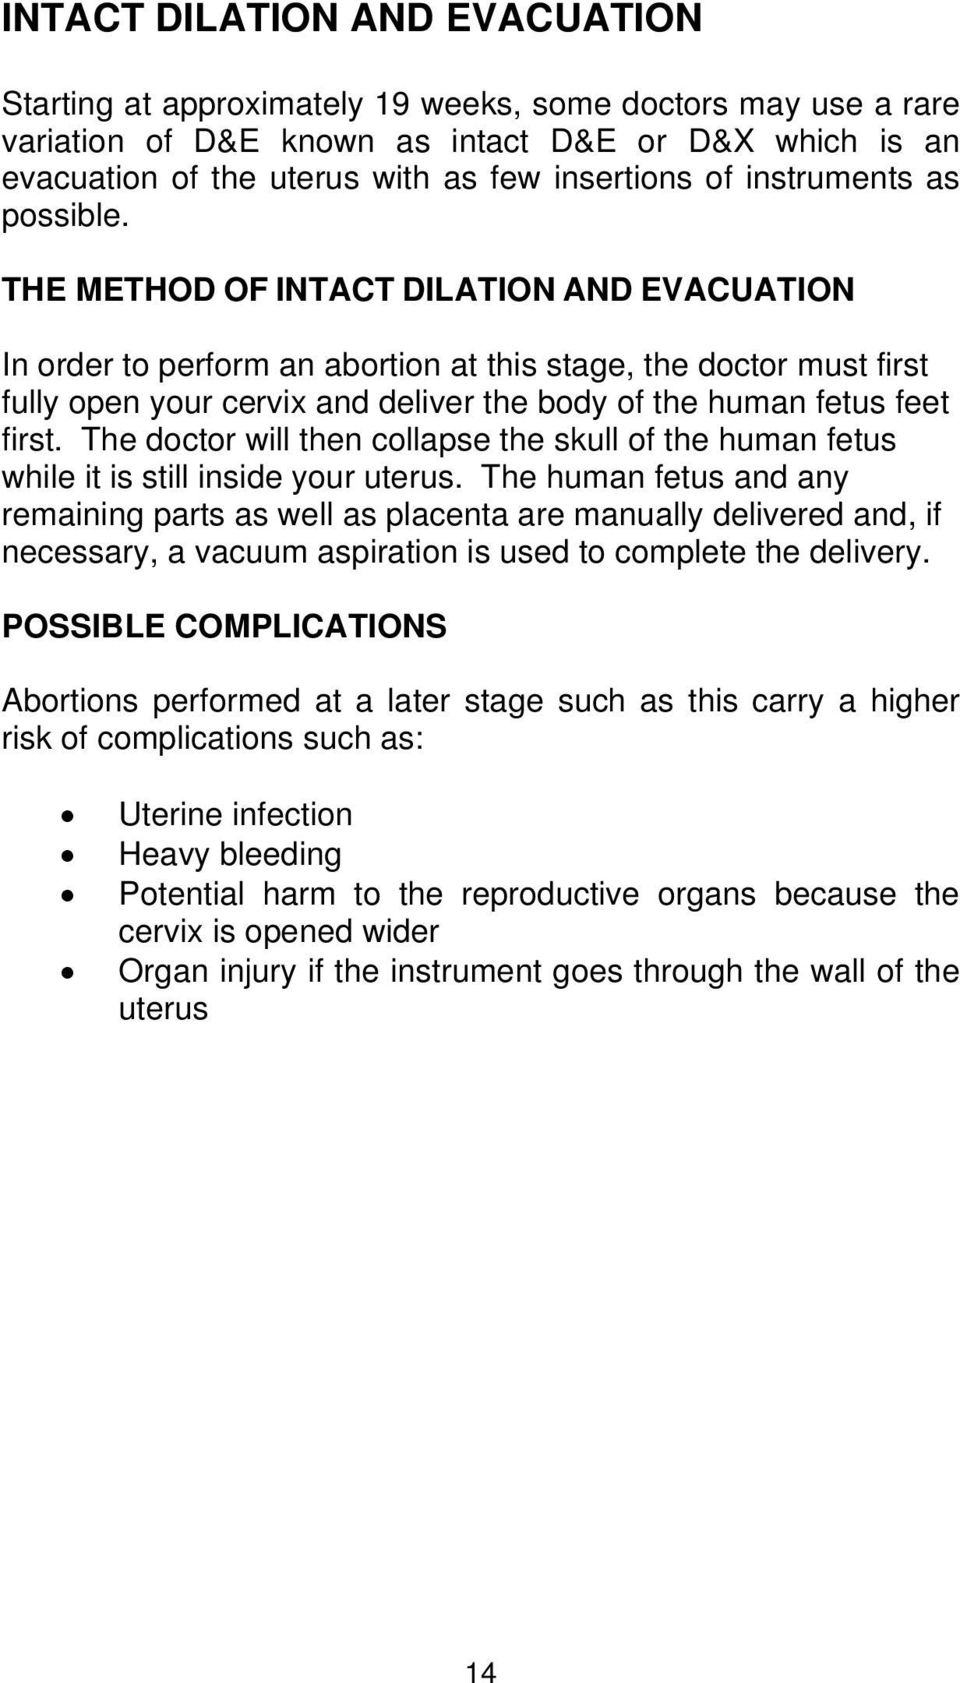 THE METHOD OF INTACT DILATION AND EVACUATION In order to perform an abortion at this stage, the doctor must first fully open your cervix and deliver the body of the human fetus feet first.